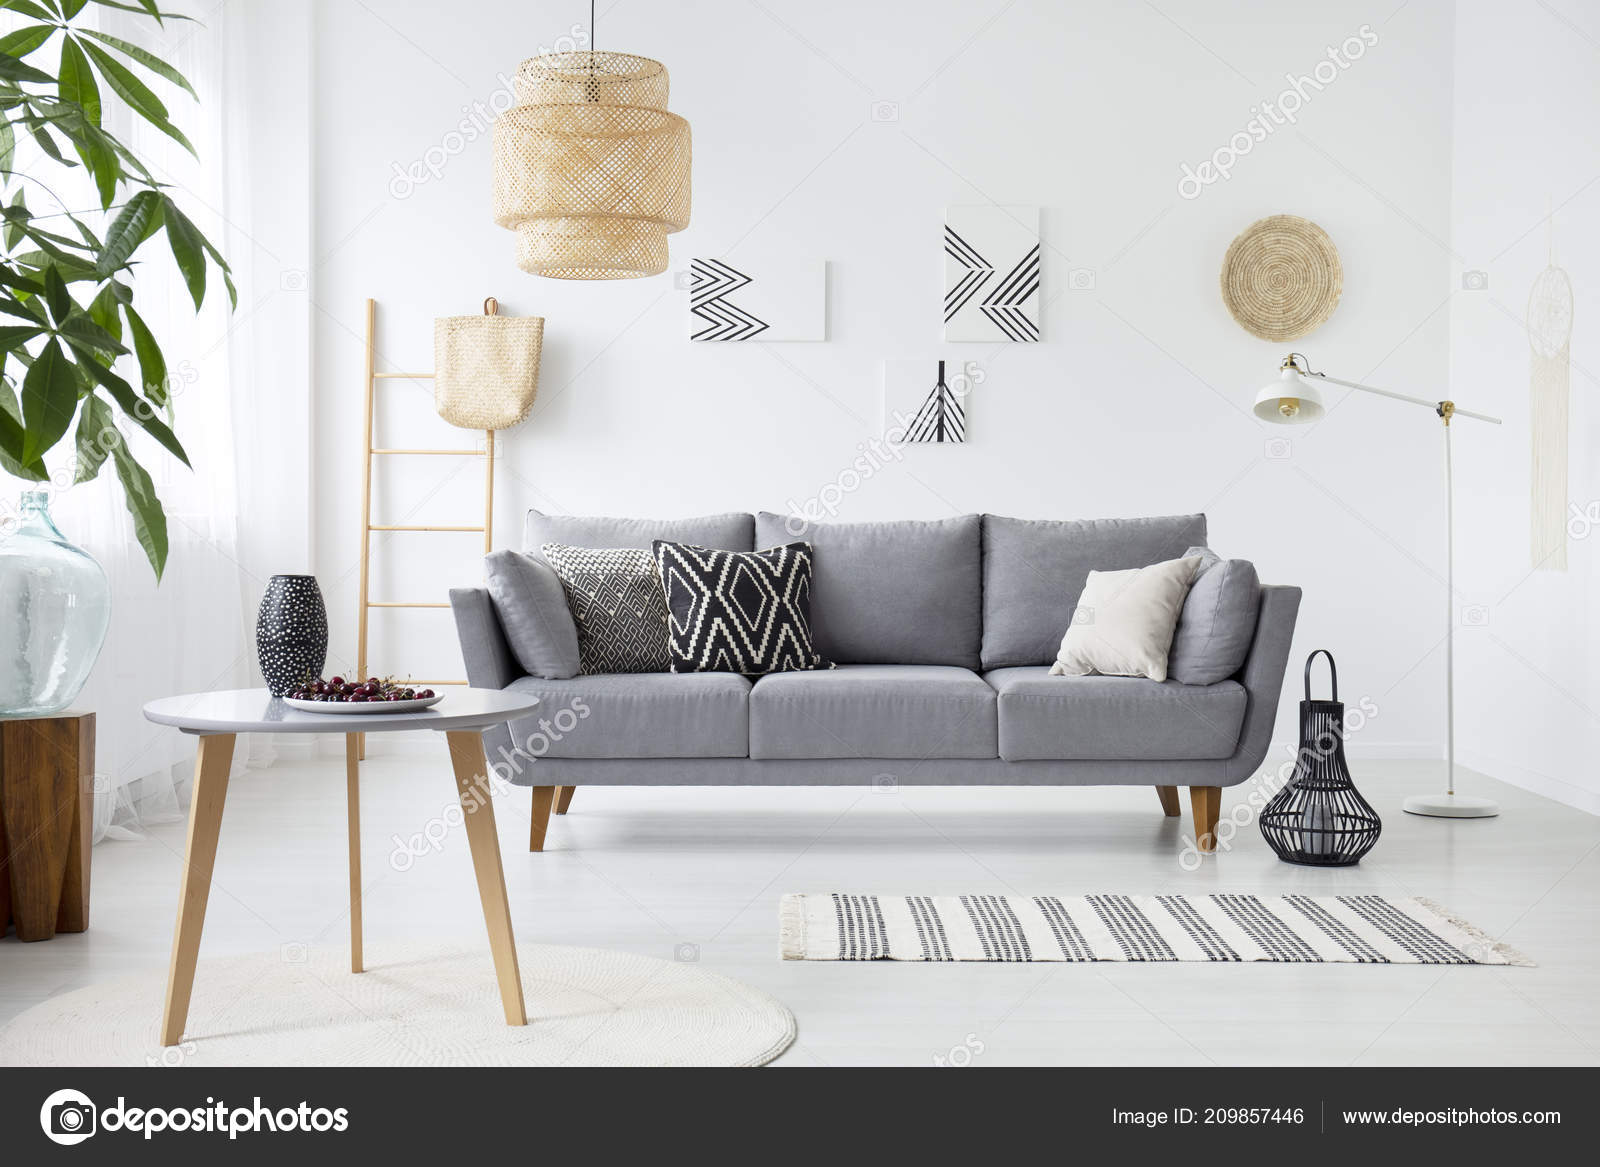 depositphotos stock photo real photo simple living room